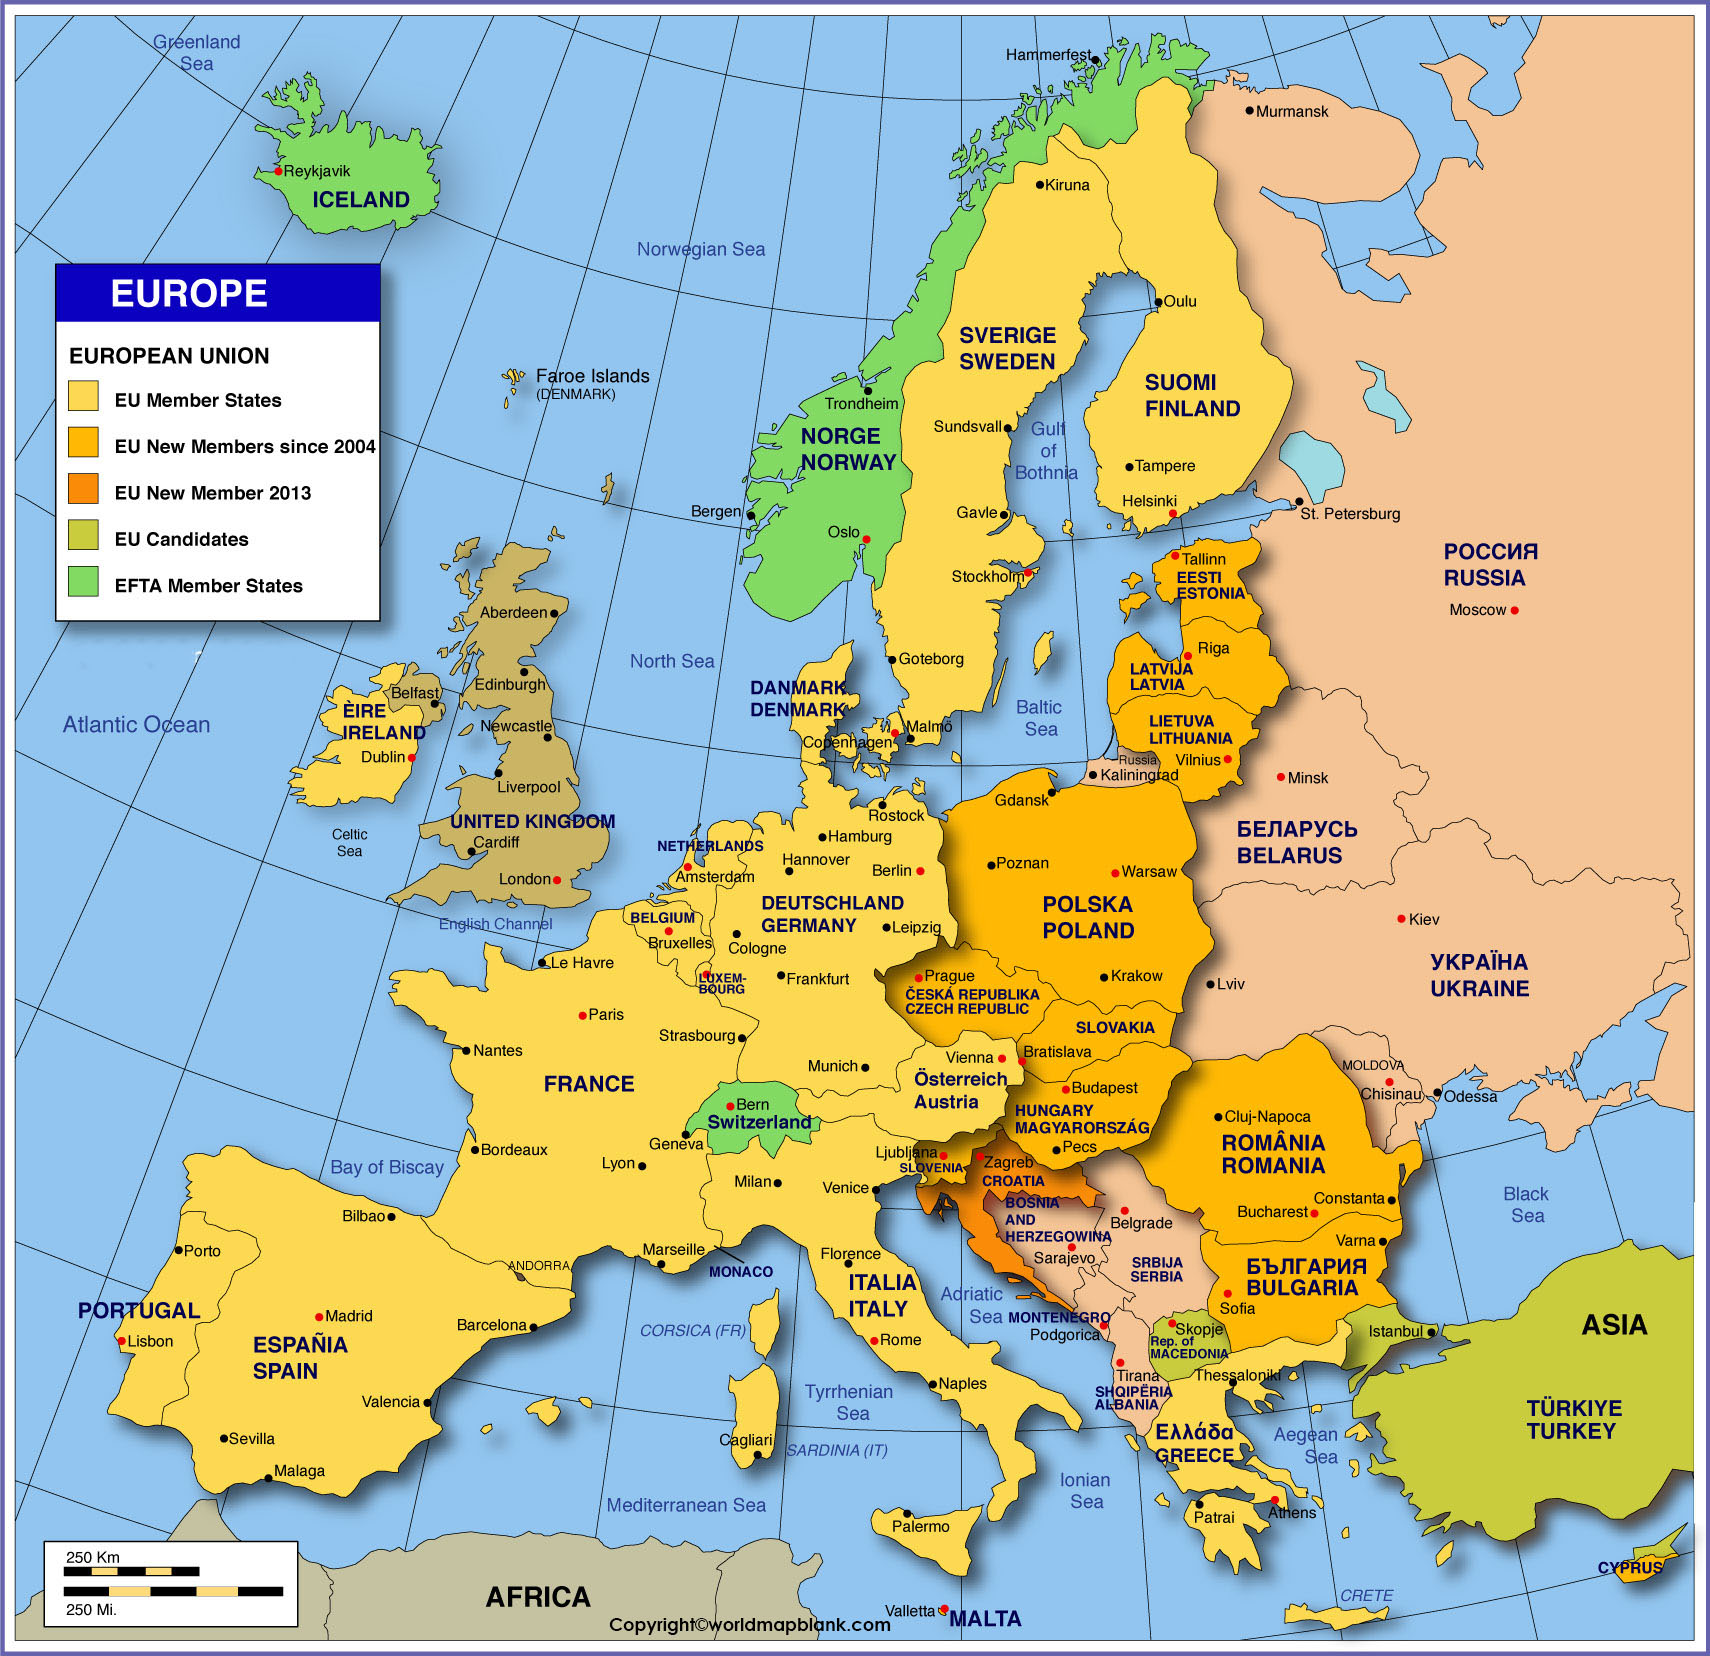 Labeled Map of Europe